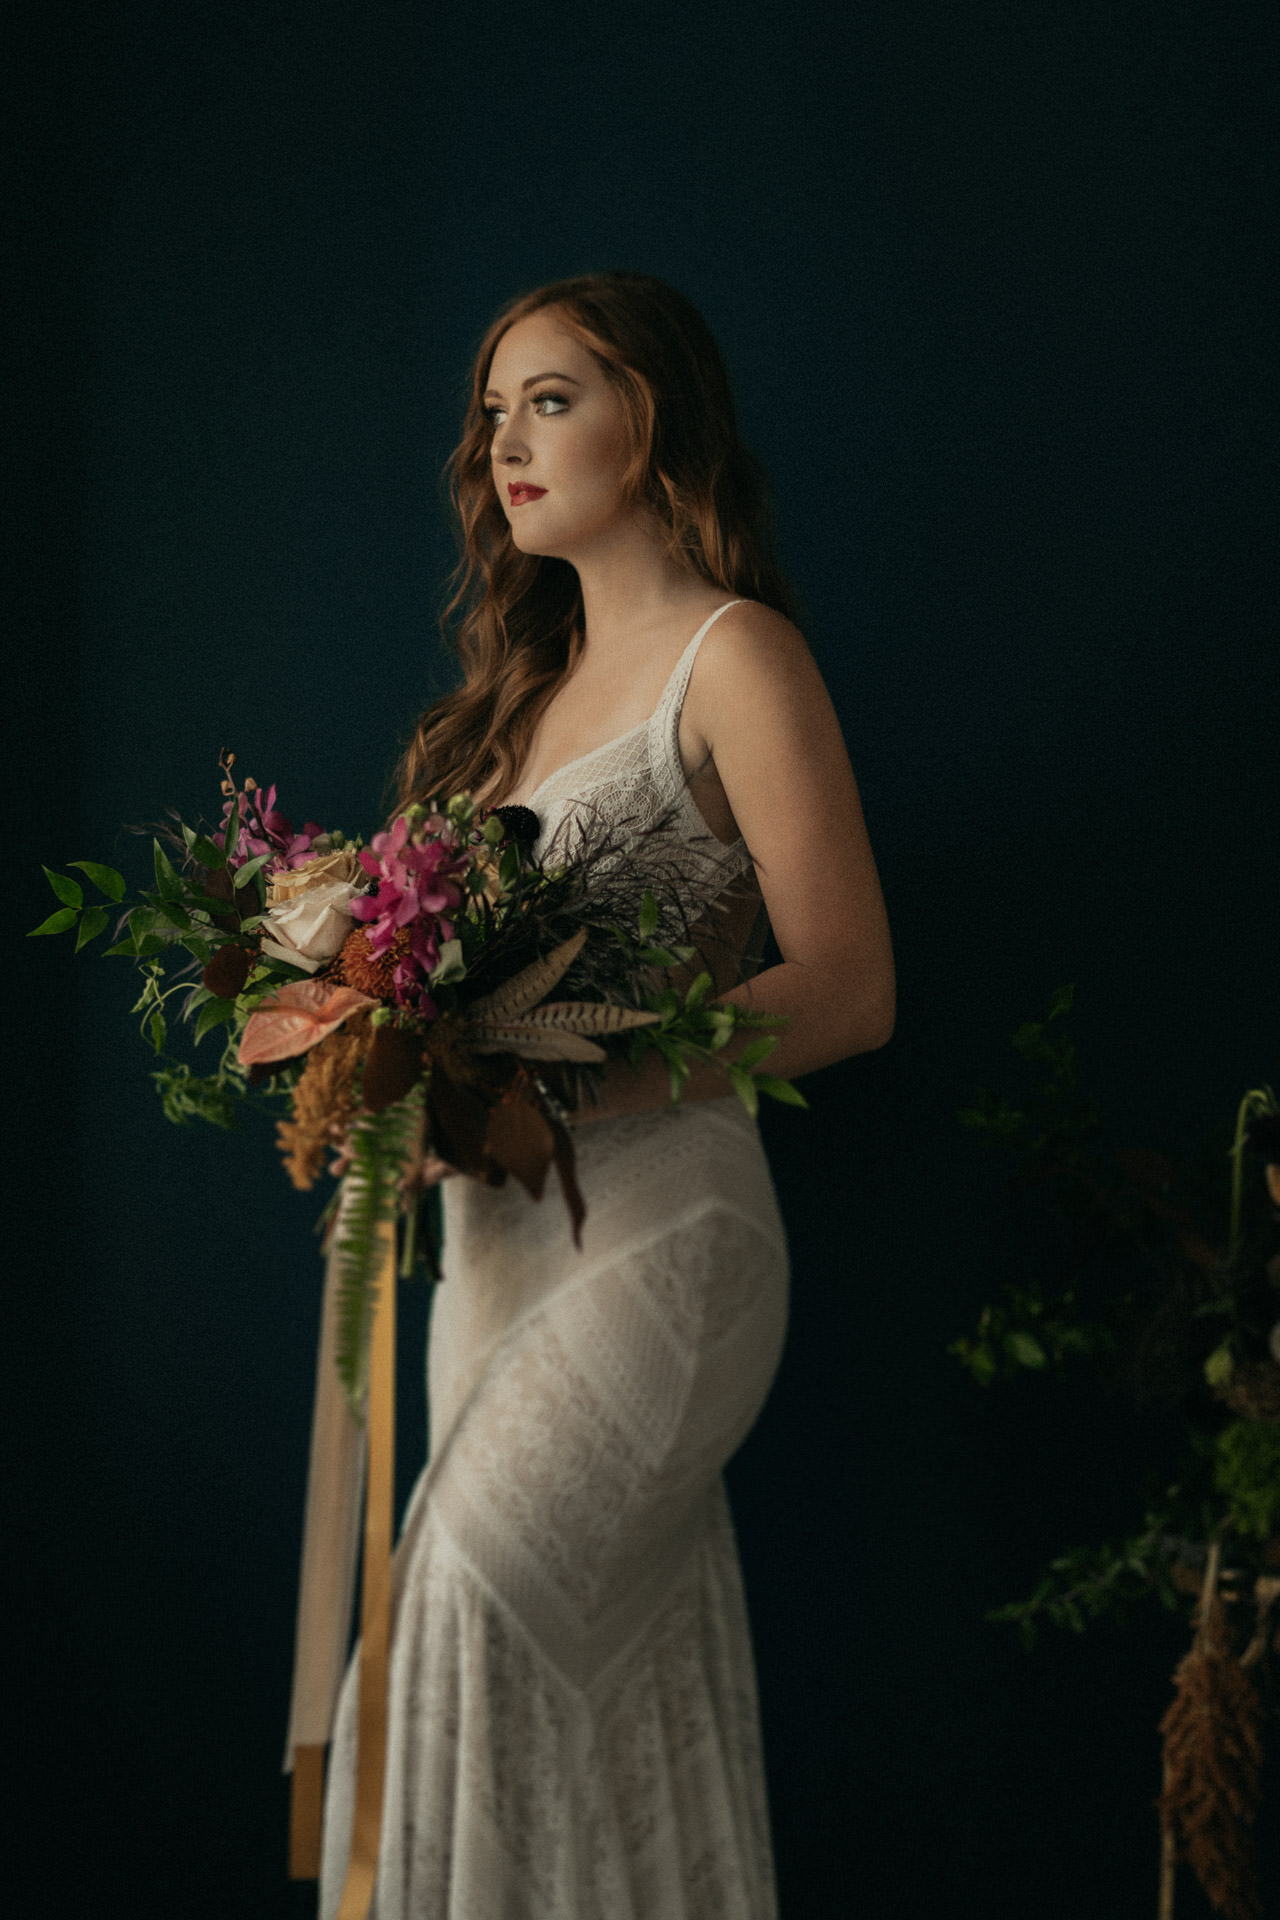 moody-fall-styled-photo-session-red-hair-woodlands-oak-atelier-whimsical-events